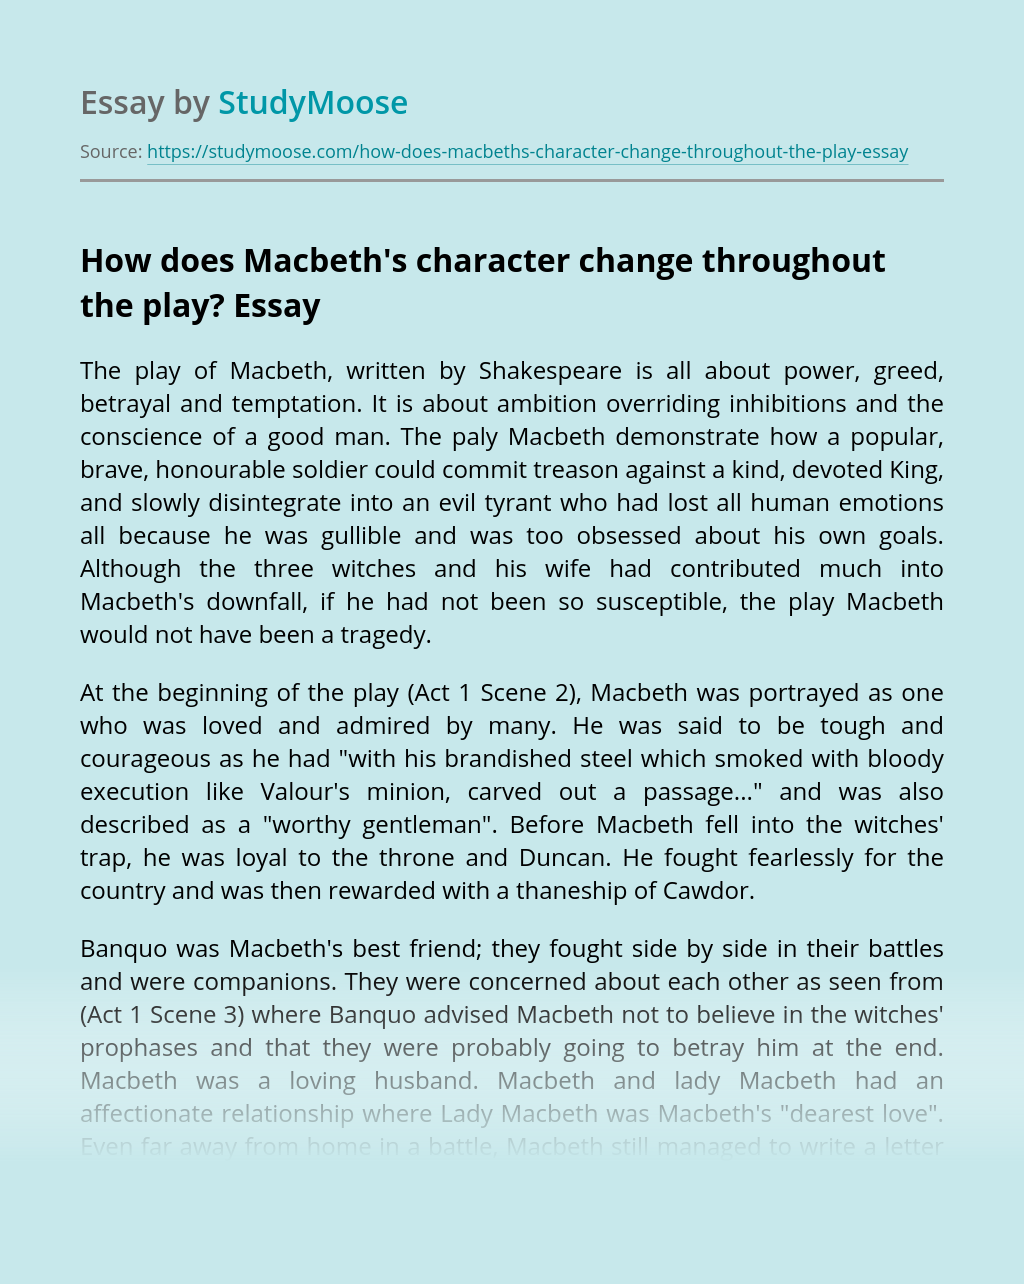 How does Macbeth's character change throughout the play?